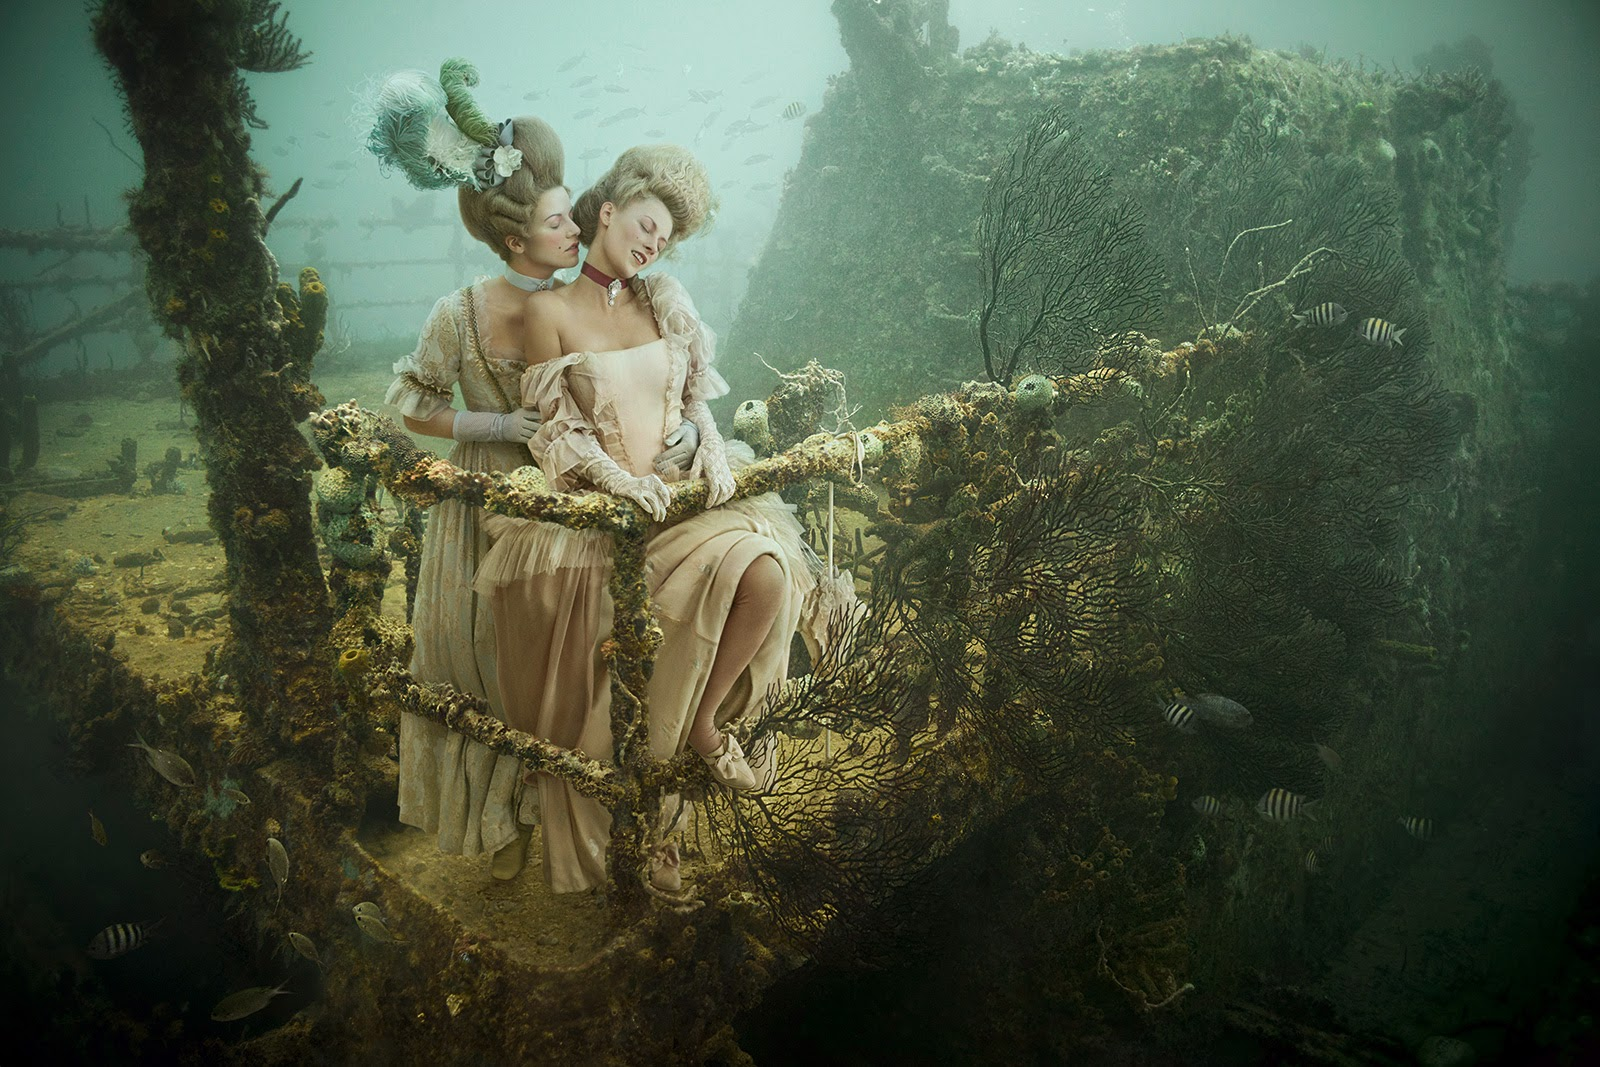 04-Andreas-Franke-Surreal-Artificial-Reef-Photography-www-designstack-co